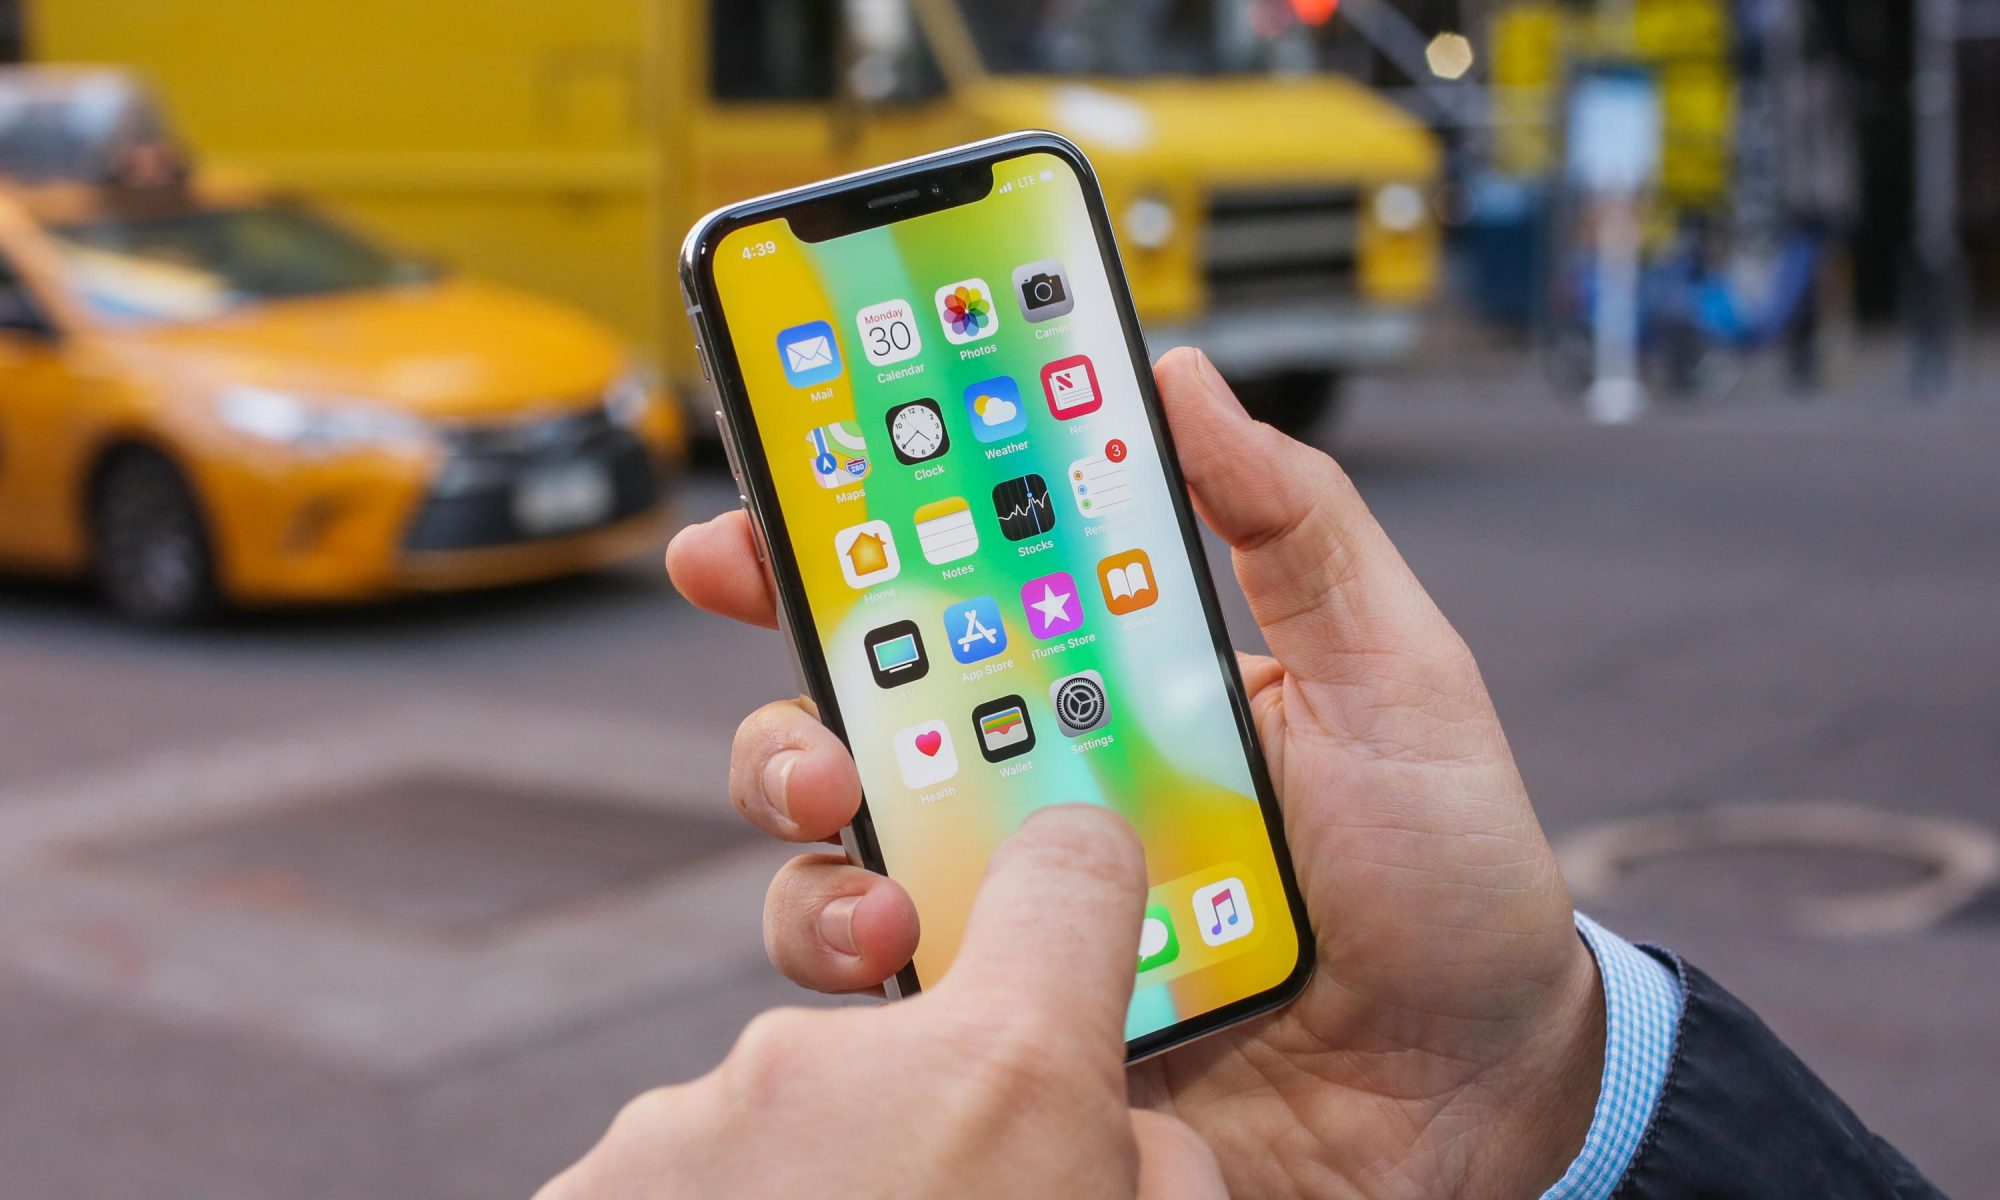 Is It Worthwhile To Look For And Buy A Refurbished iPhone?